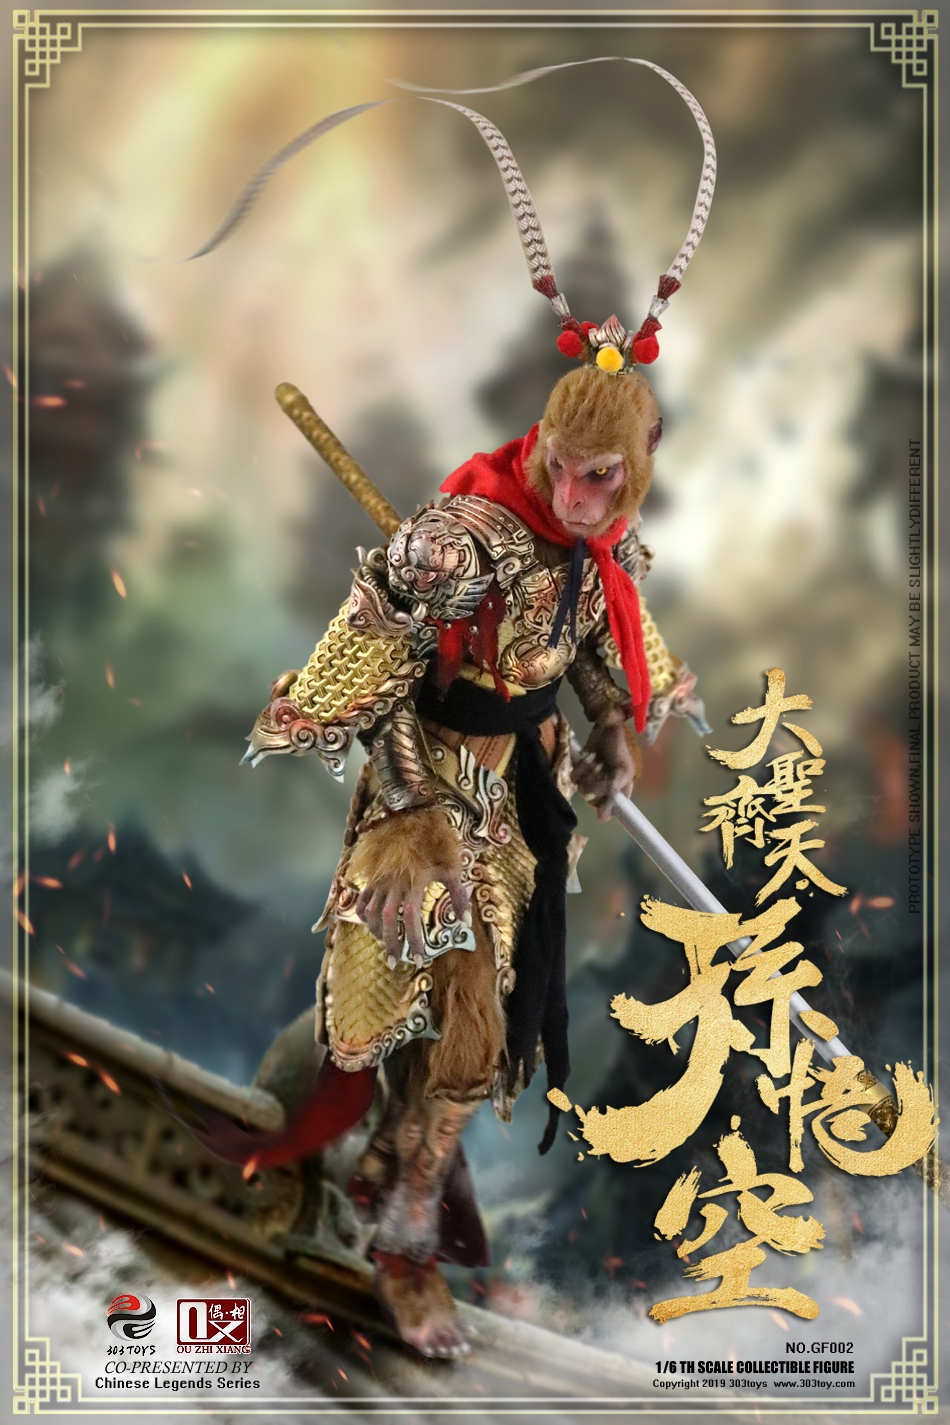 EveningPhase - NEW PRODUCT: 303TOYS x Evening phase: 1/6 National Wind Legend Series - Sun Wukong Monkey King Apocalypse & Dasheng Qitian & Stepping 18090811